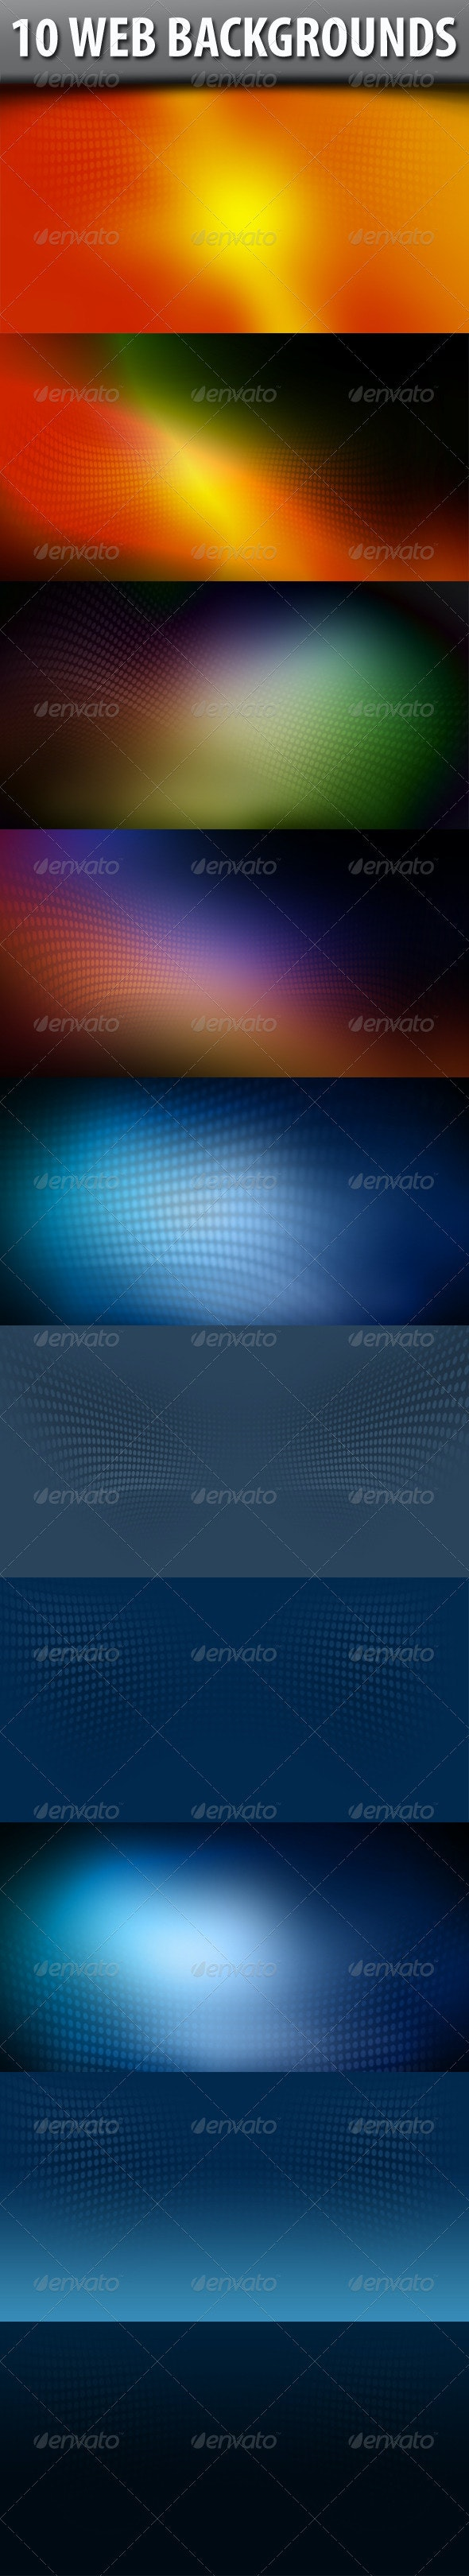 Web Backgrounds - Abstract Backgrounds